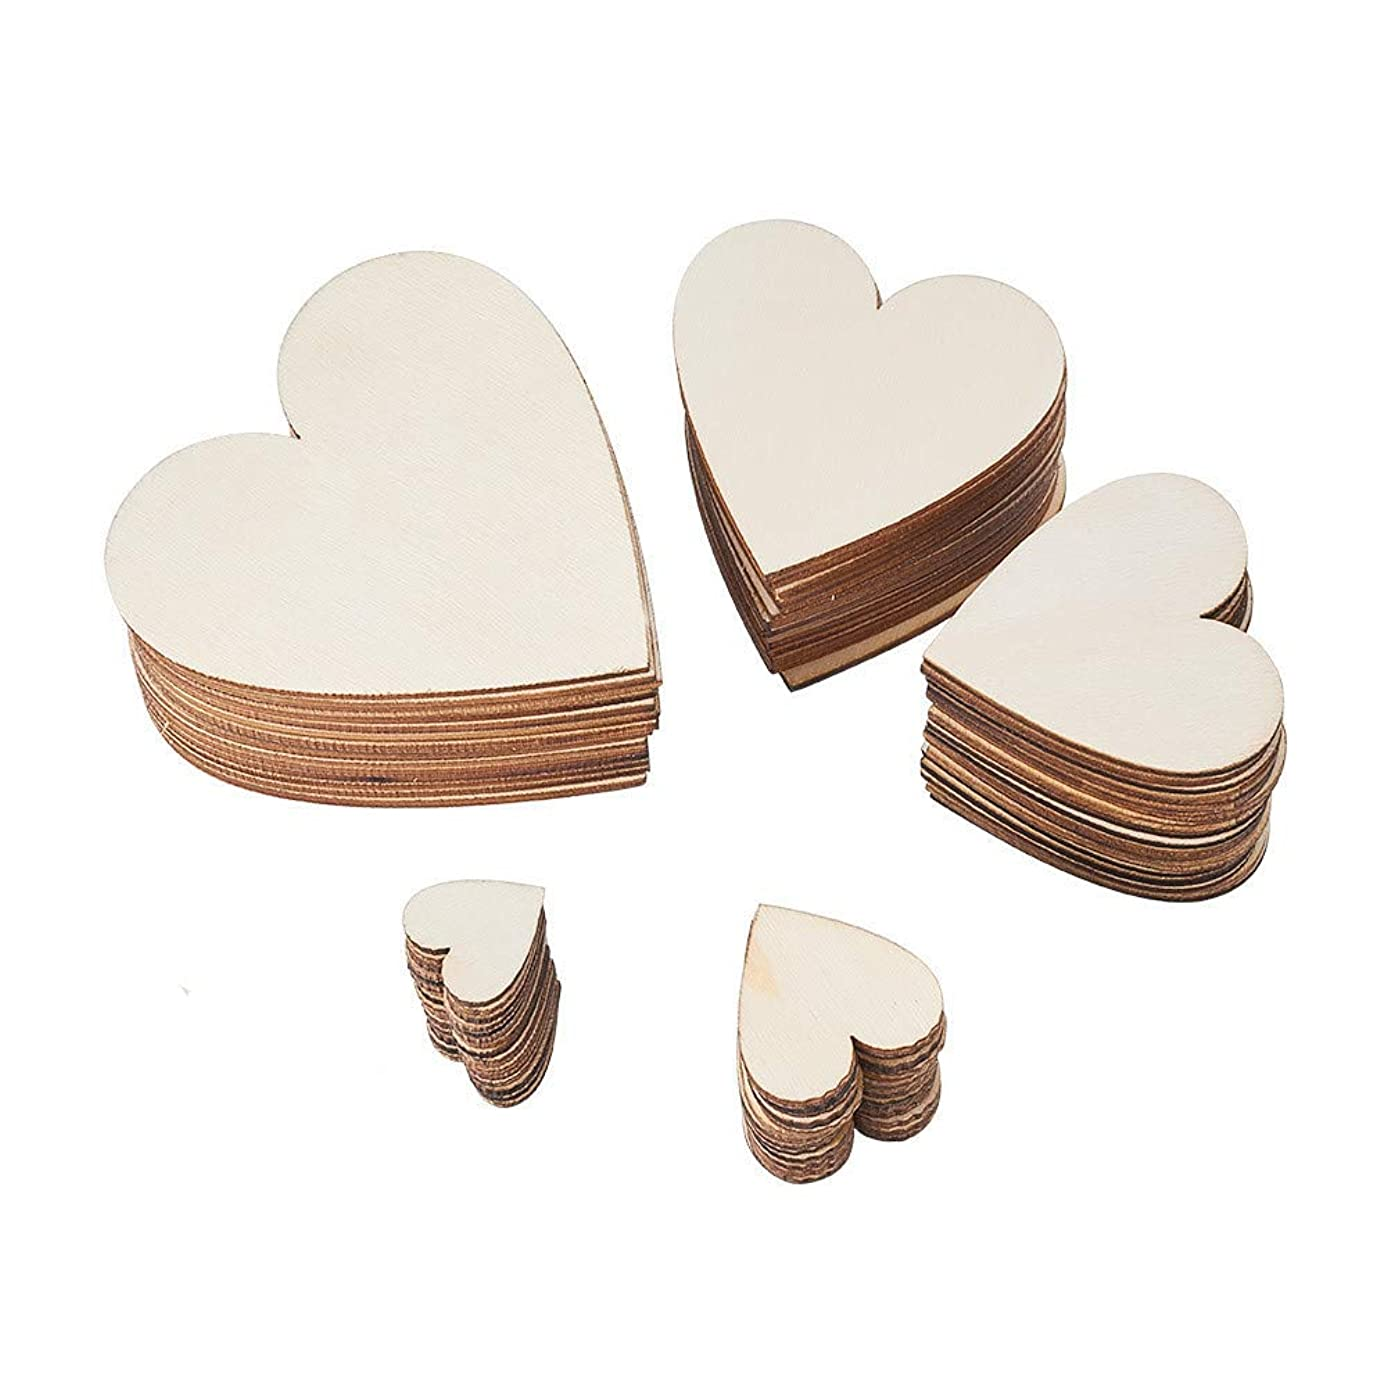 BENECREAT 200PCS 5 Assorted Size Christmas Blank Wood Hearts Embellishments Wood Hearts Slices for Wedding, Valentine, DIY, Arts, Crafts, Card Making